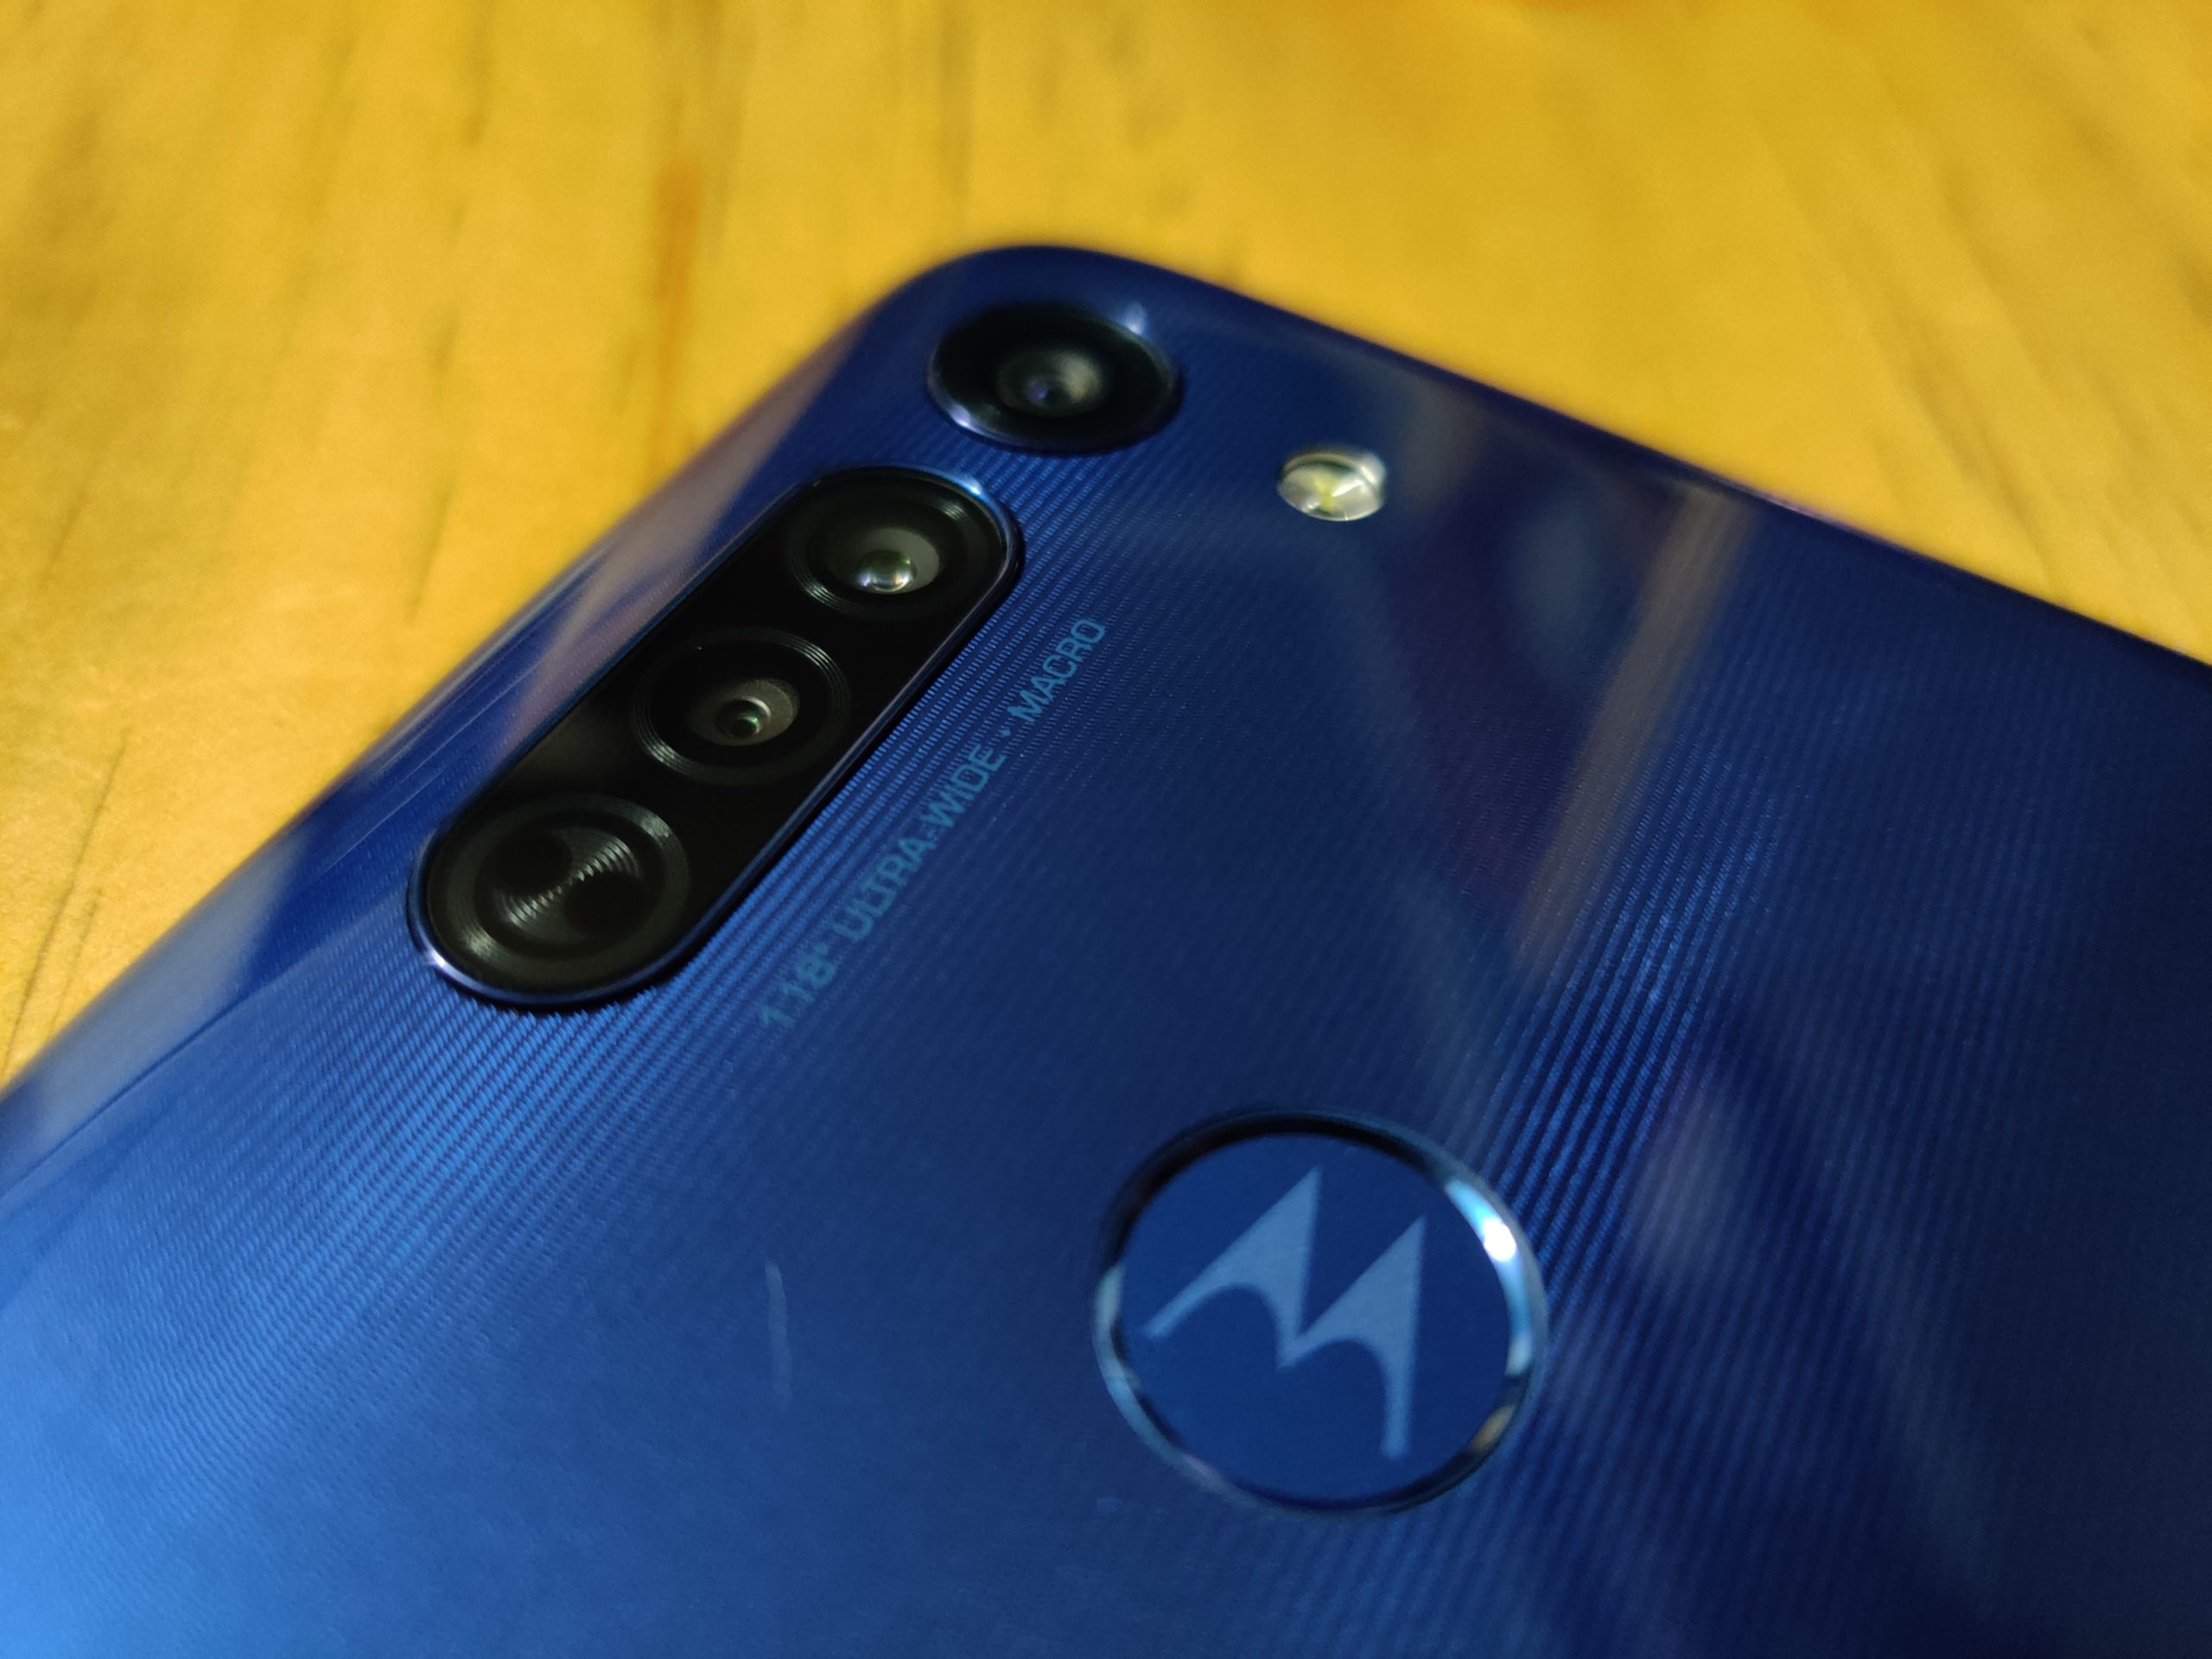 Motorola 'accidentally' leaks specifications of G Fast via a promo video